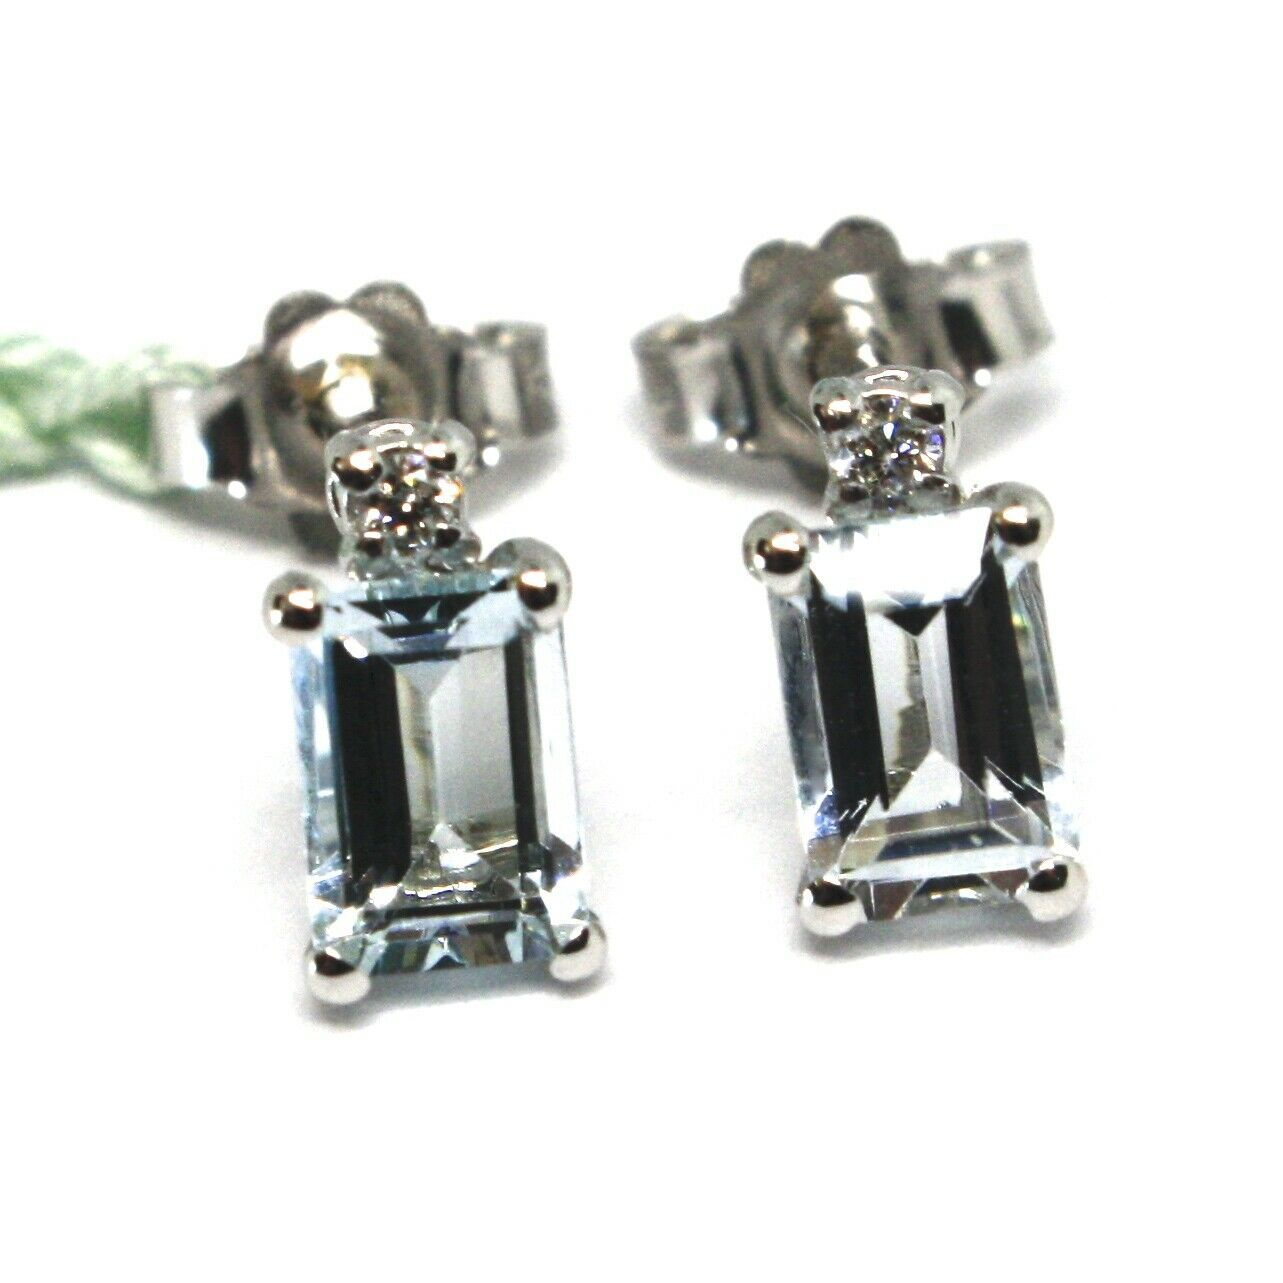 18K WHITE GOLD AQUAMARINE EARRINGS 0.90 EMERALD CUT, DIAMONDS, MADE IN ITALY